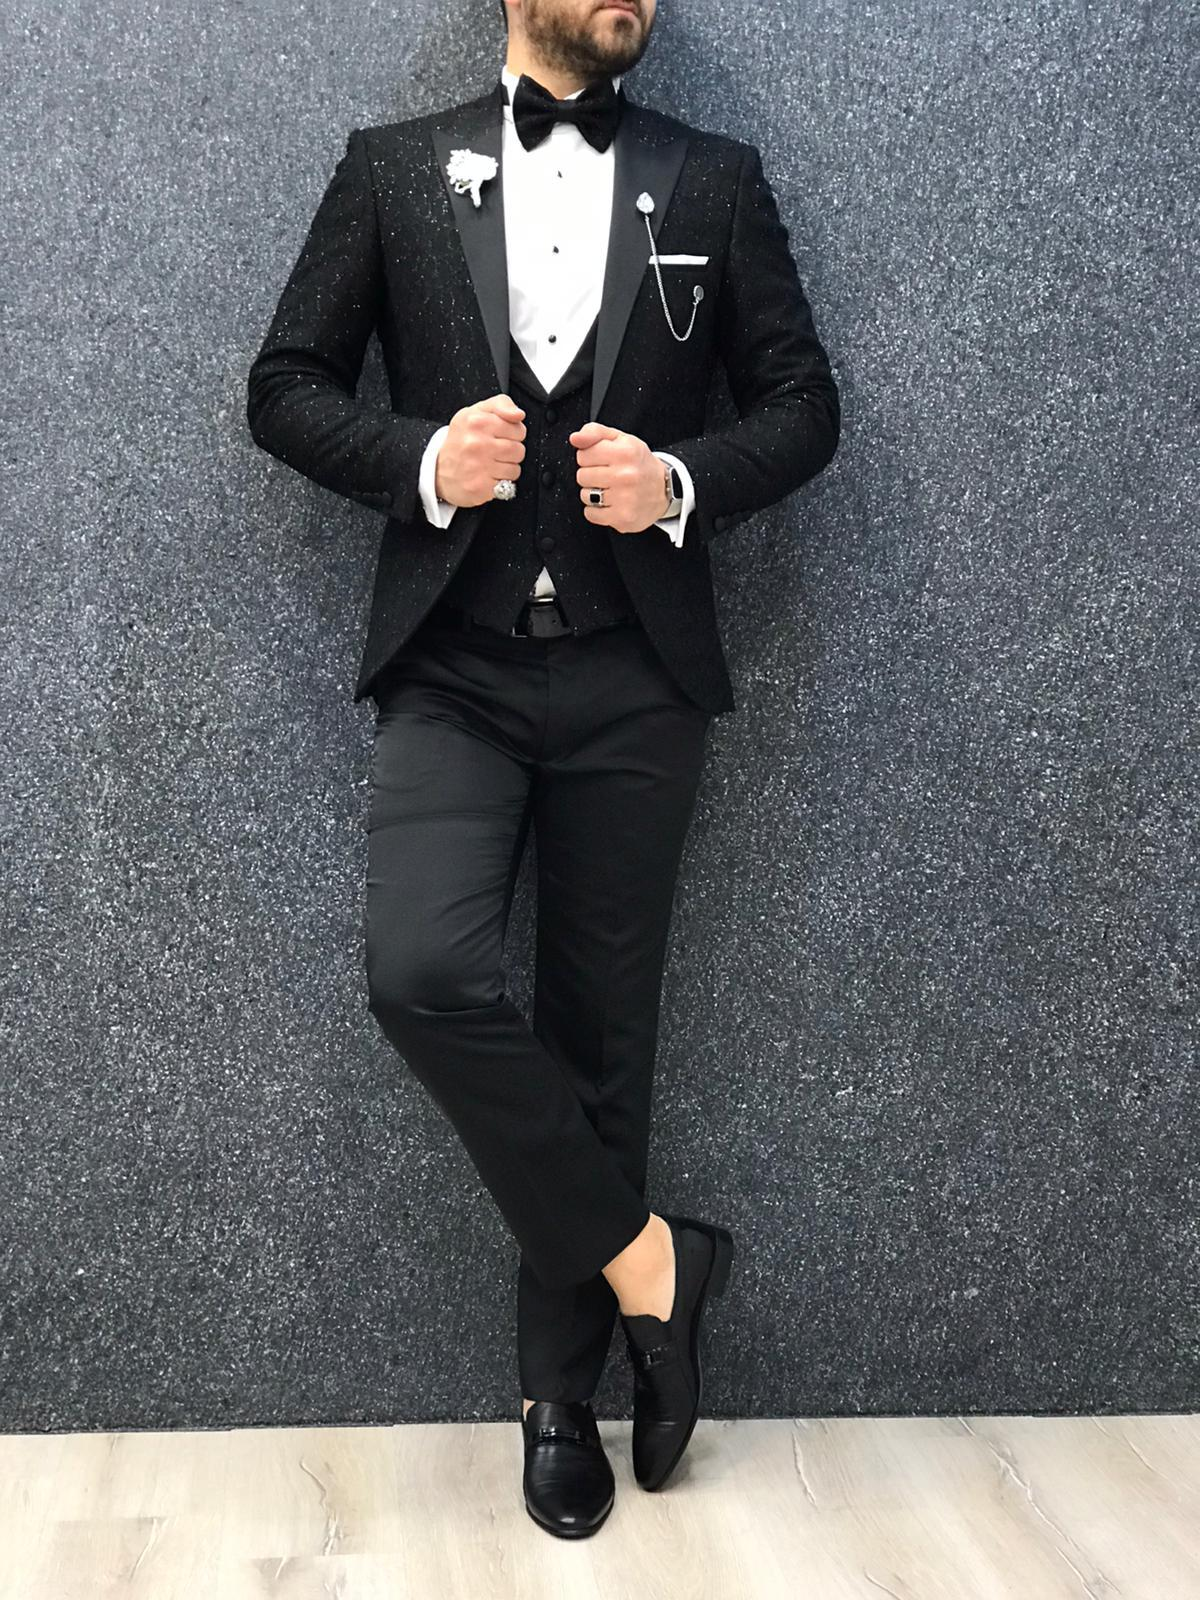 Zerno Brilliant Slim Fit Black Tuxedo